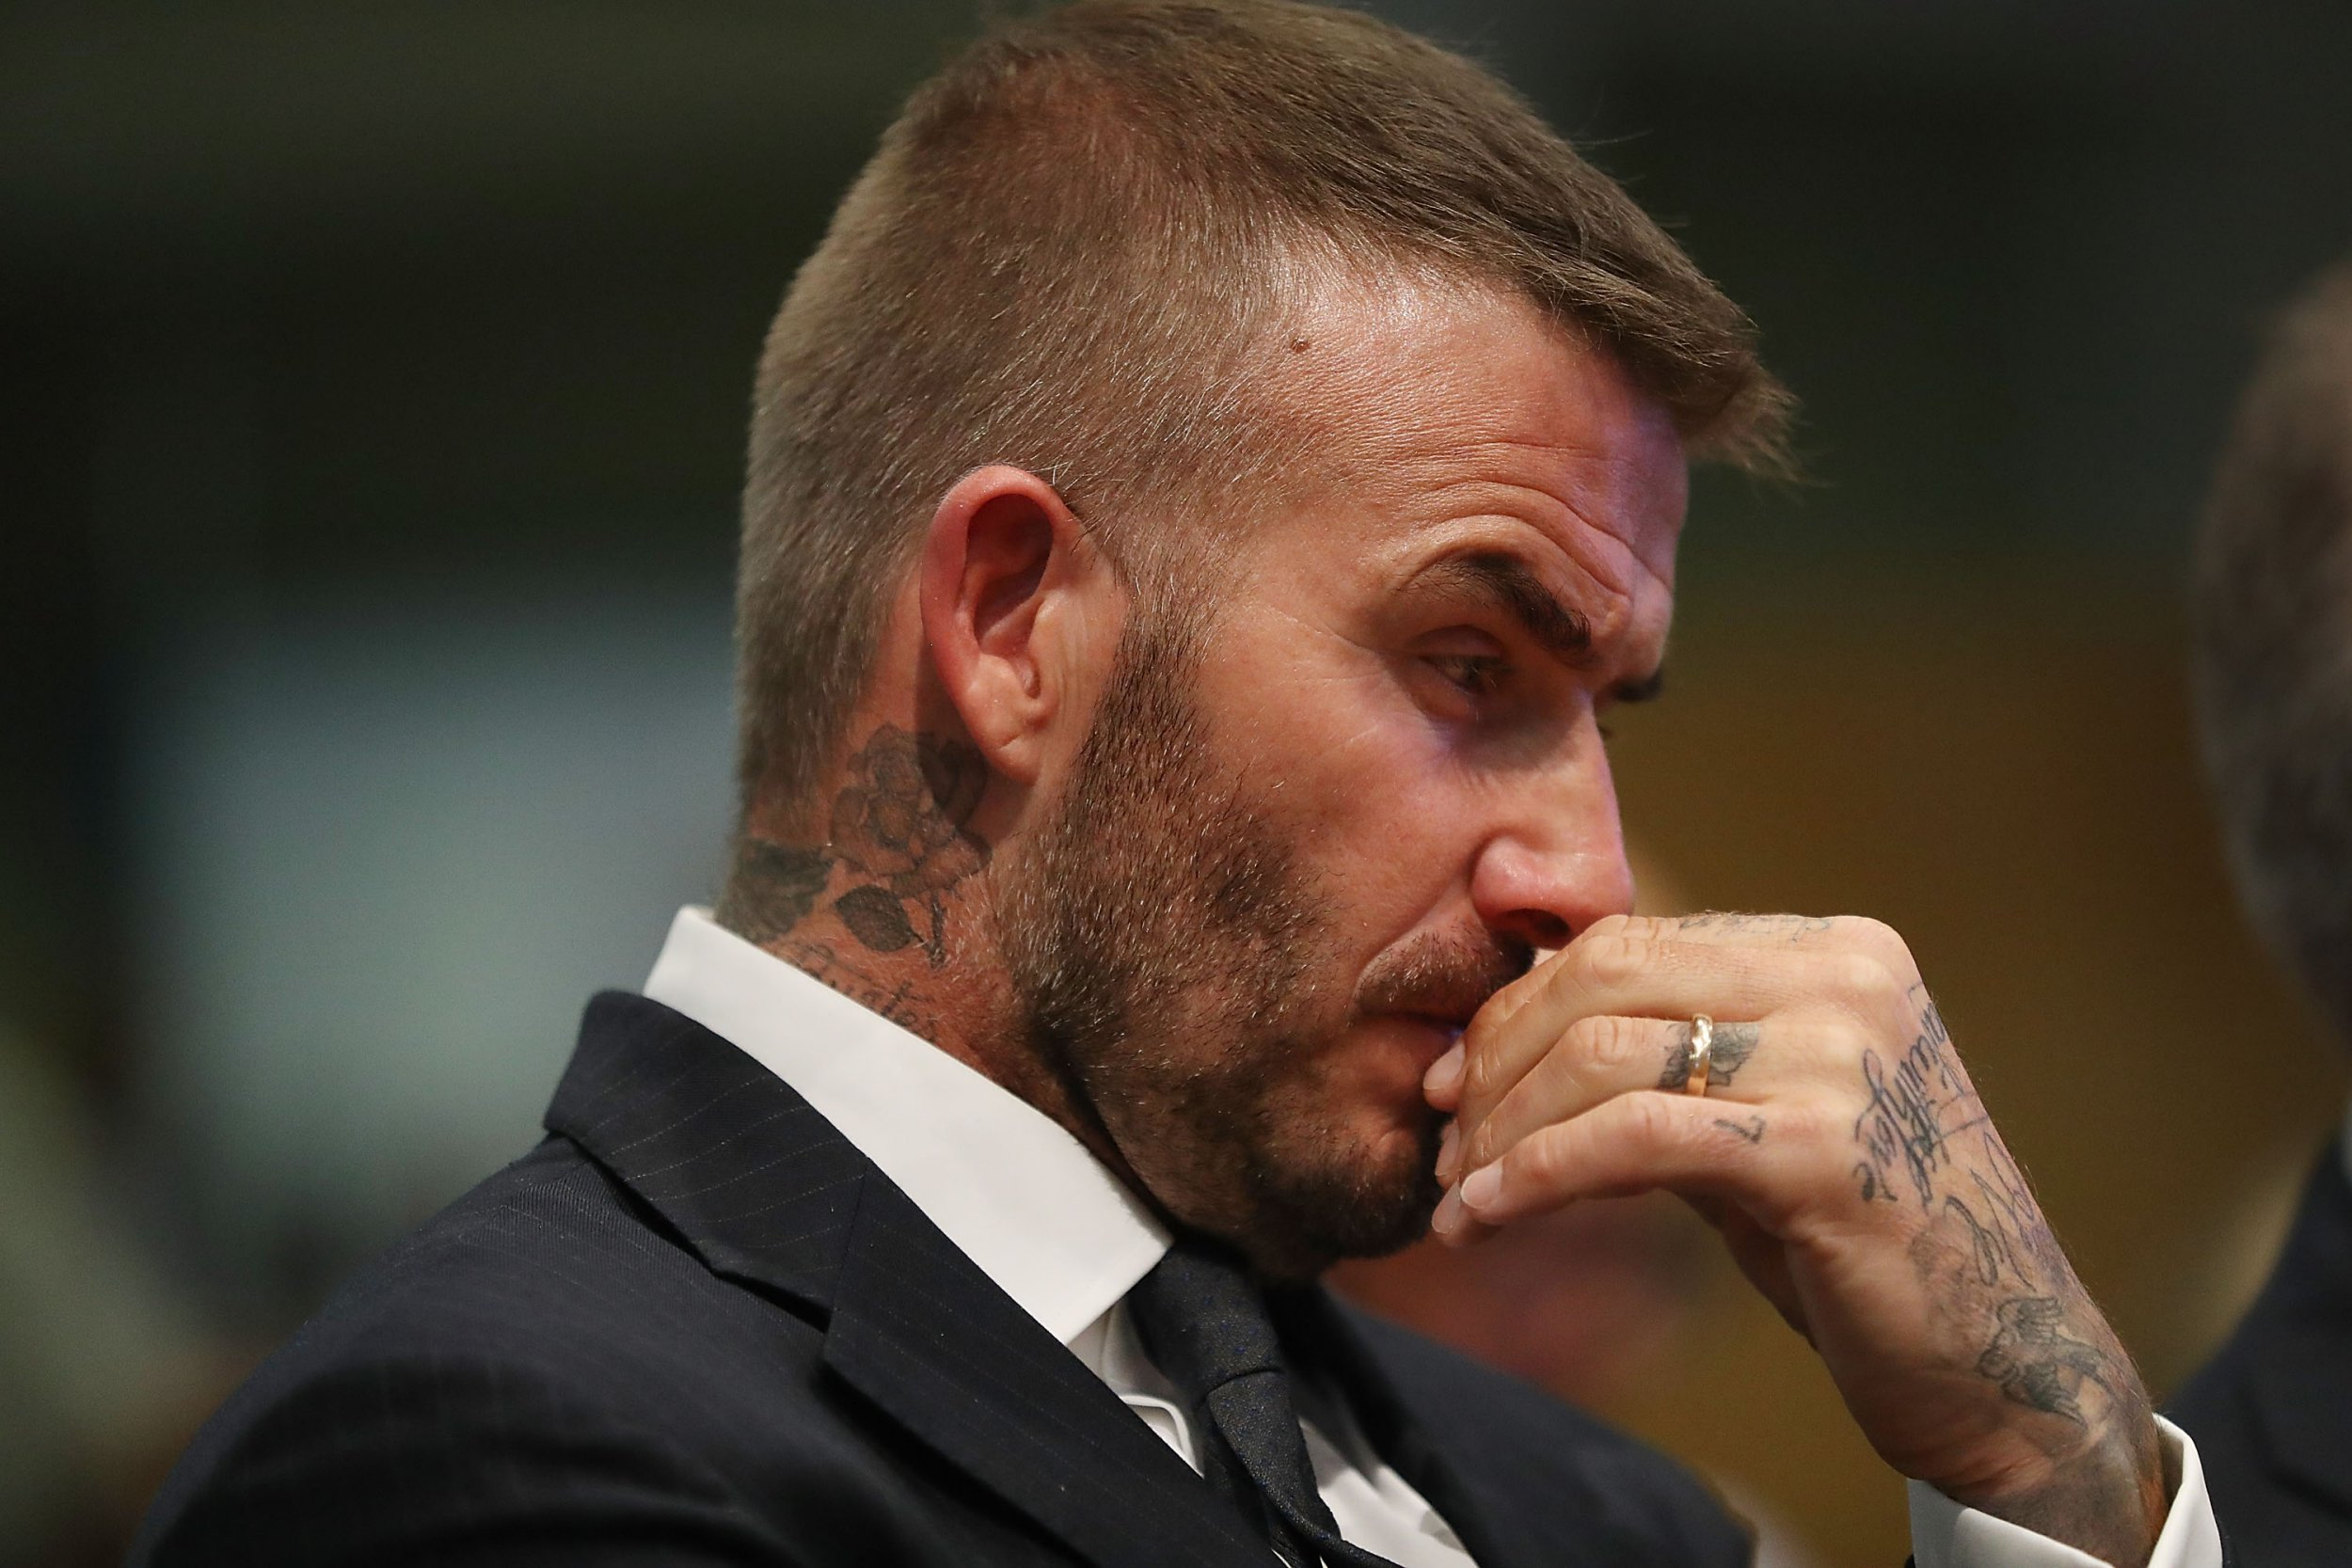 MIAMI, FL - JULY 12: David Beckham attends a meeting at the Miami City Hall during a public hearing about building a Major League soccer stadium on a public golf course on July 12, 2018 in Miami, Florida. Mr. Beckham and his partners attended the meeeting at the City of Miami during a public hearing in their effort to build a Major League Soccer stadium in the City of Miami for their professional soccer team. (Photo by Joe Raedle/Getty Images)